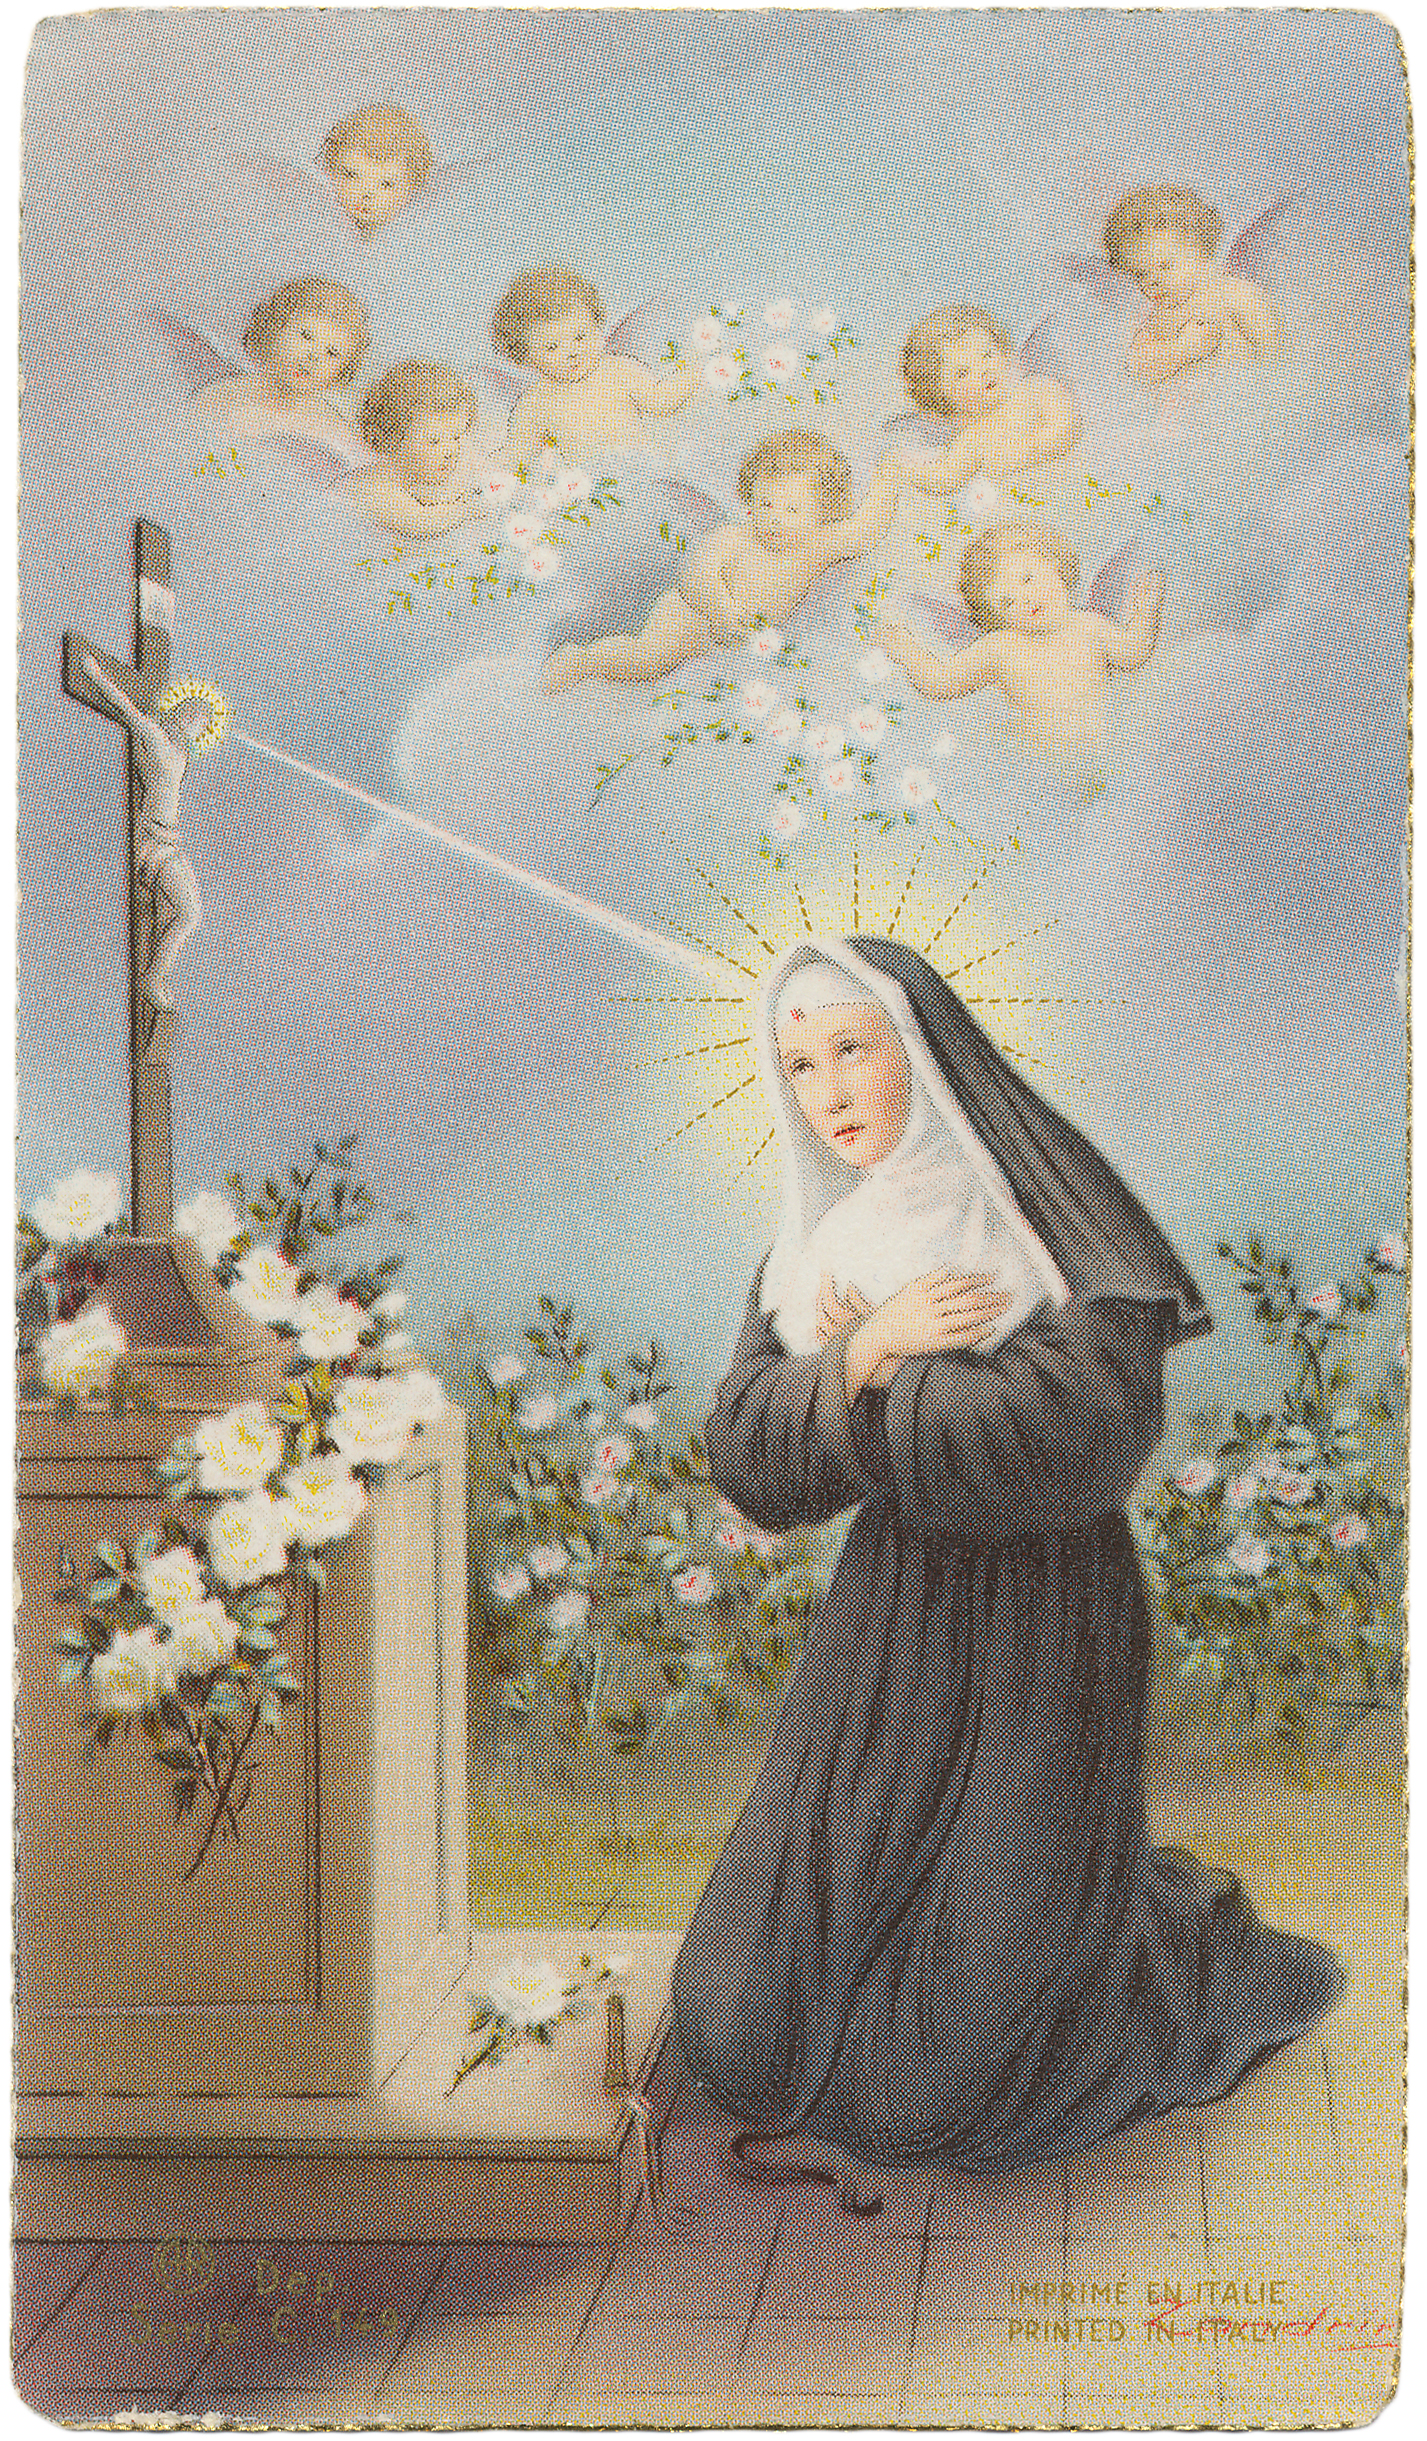 Saint rita novena 9 days